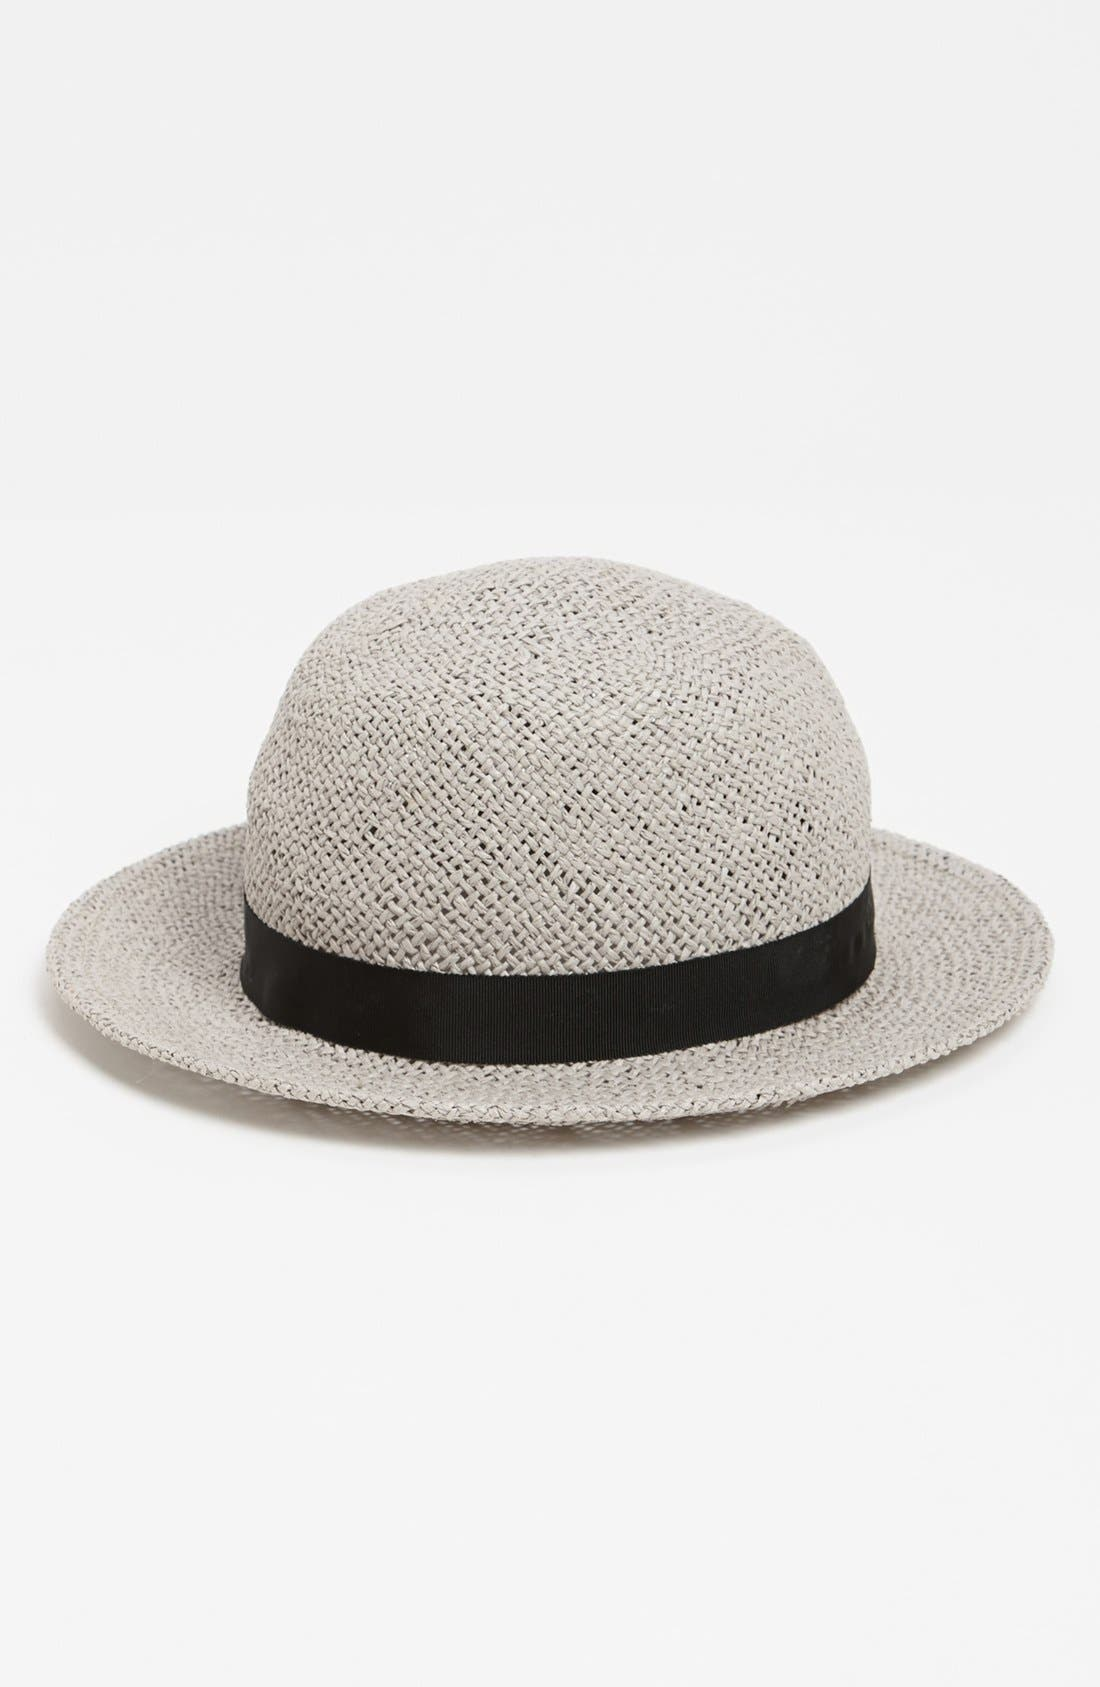 Main Image - Topshop Wide Brim Straw Cloche